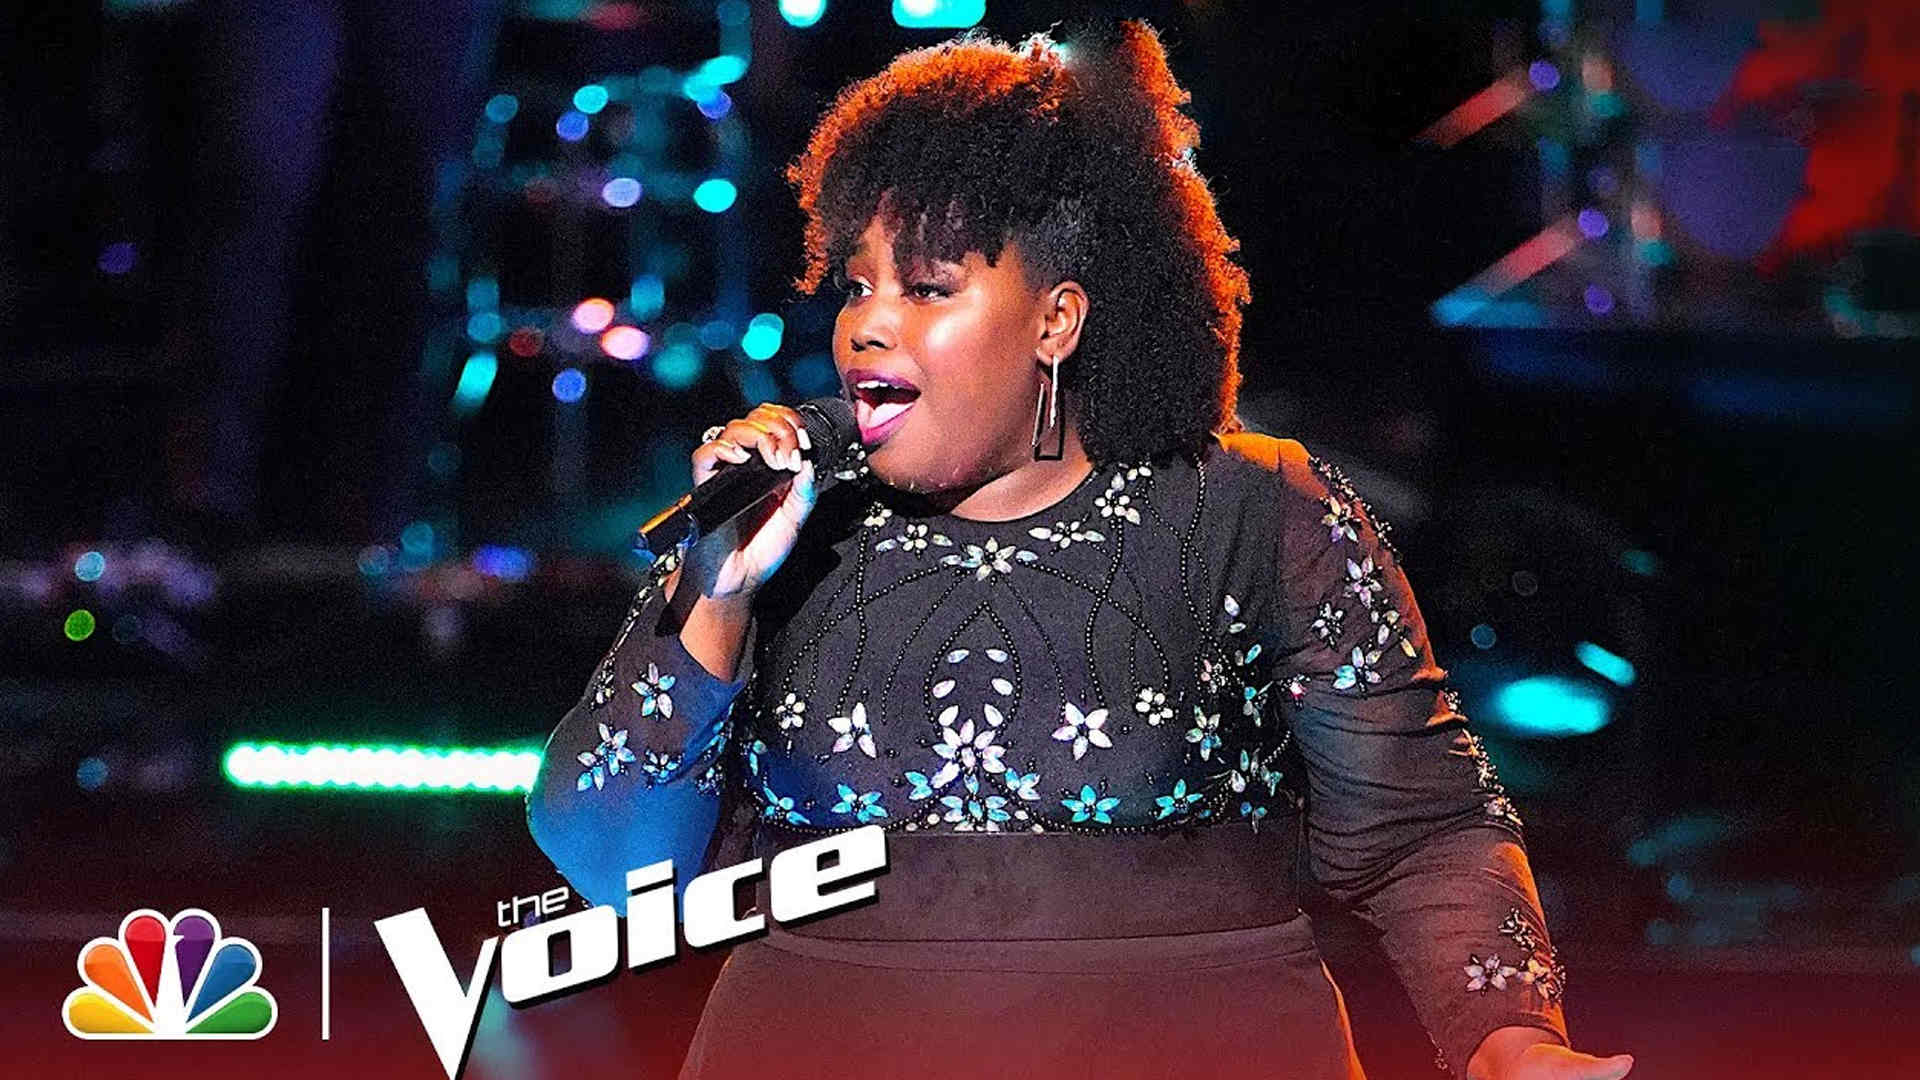 Vote Kymberli Joye The Voice 2018 Live Top 13 on 19 November 2018 with The Voice 2018 Voting App Online